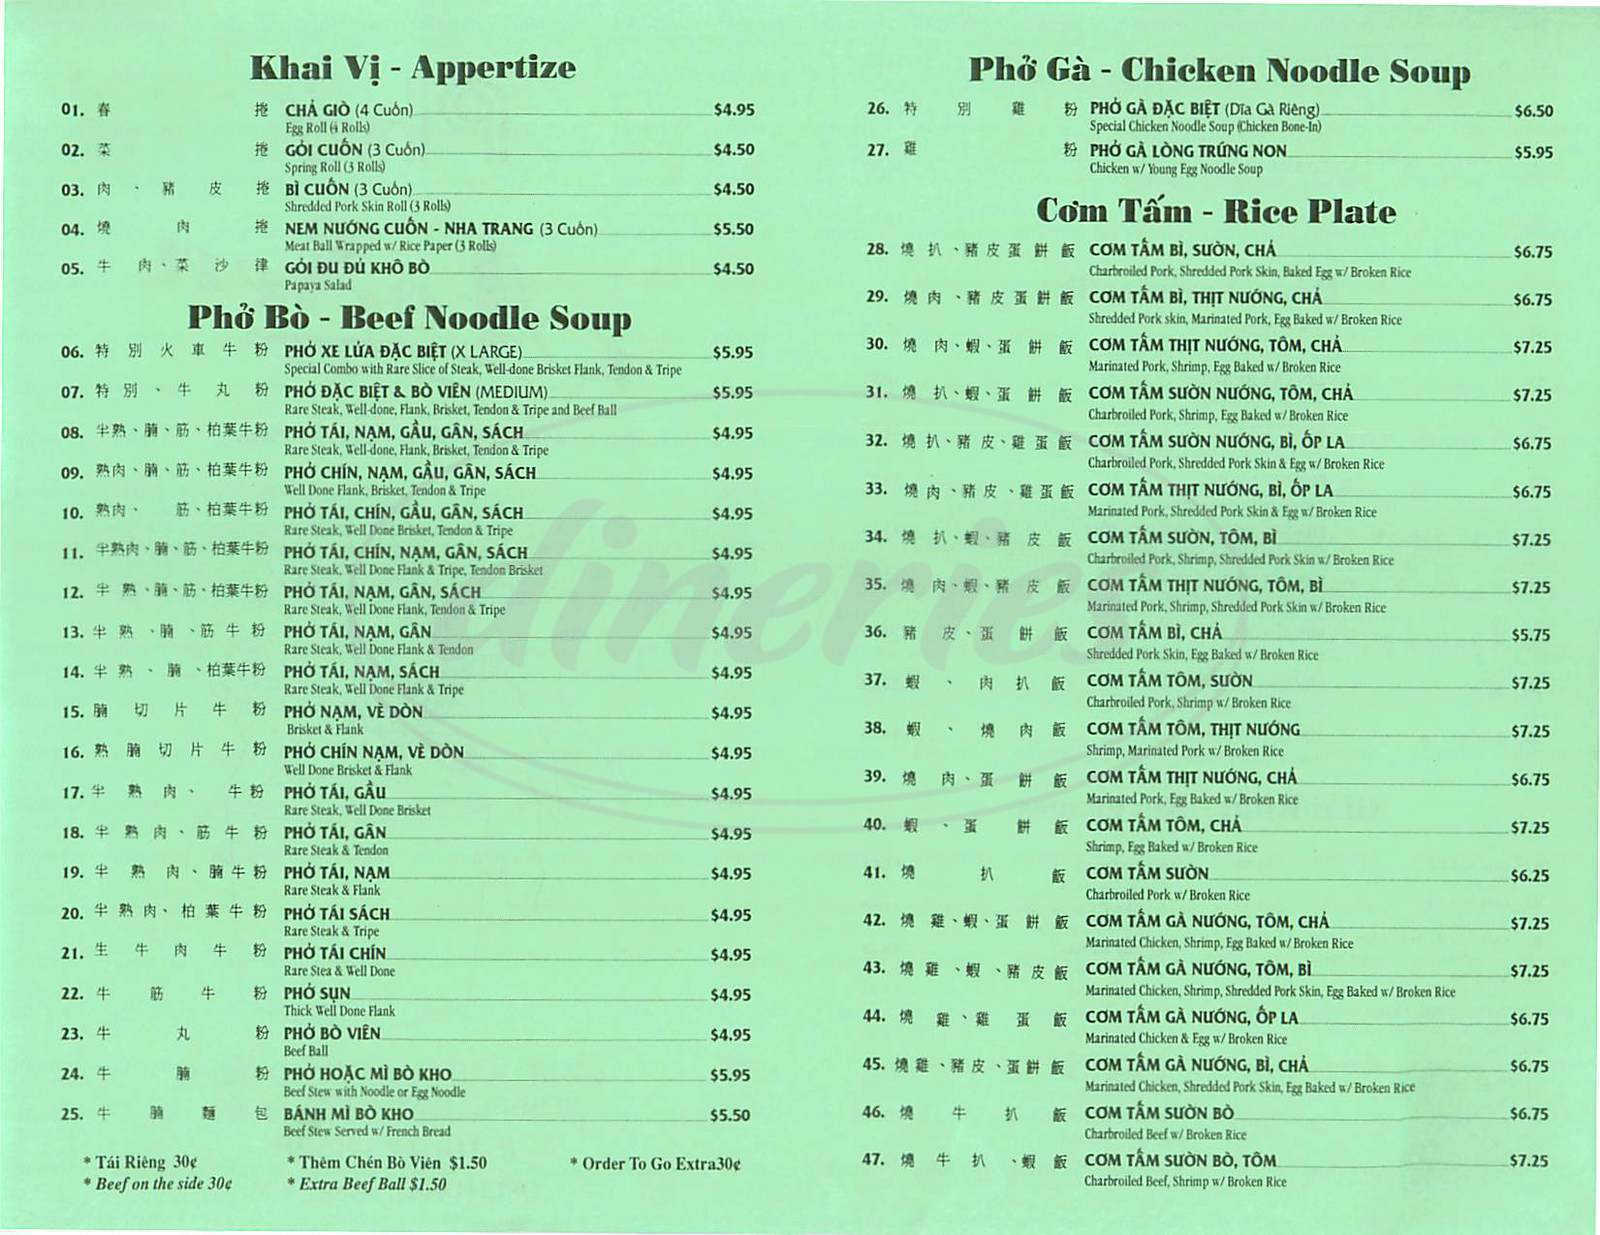 menu for Pho AoSen